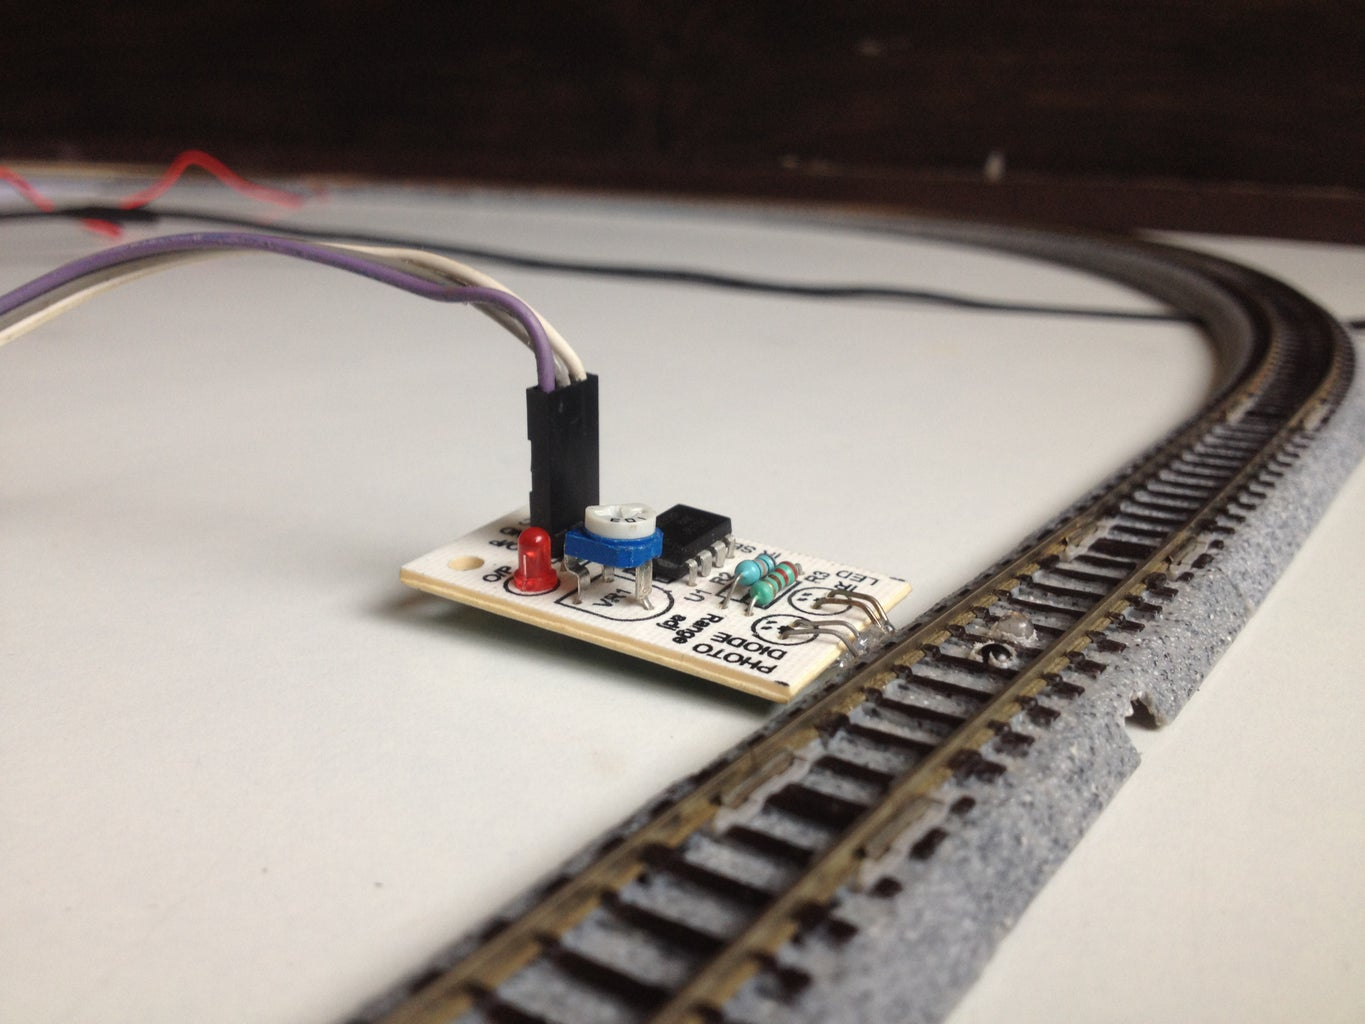 Connect the 'sensored' Tracks to the Shield